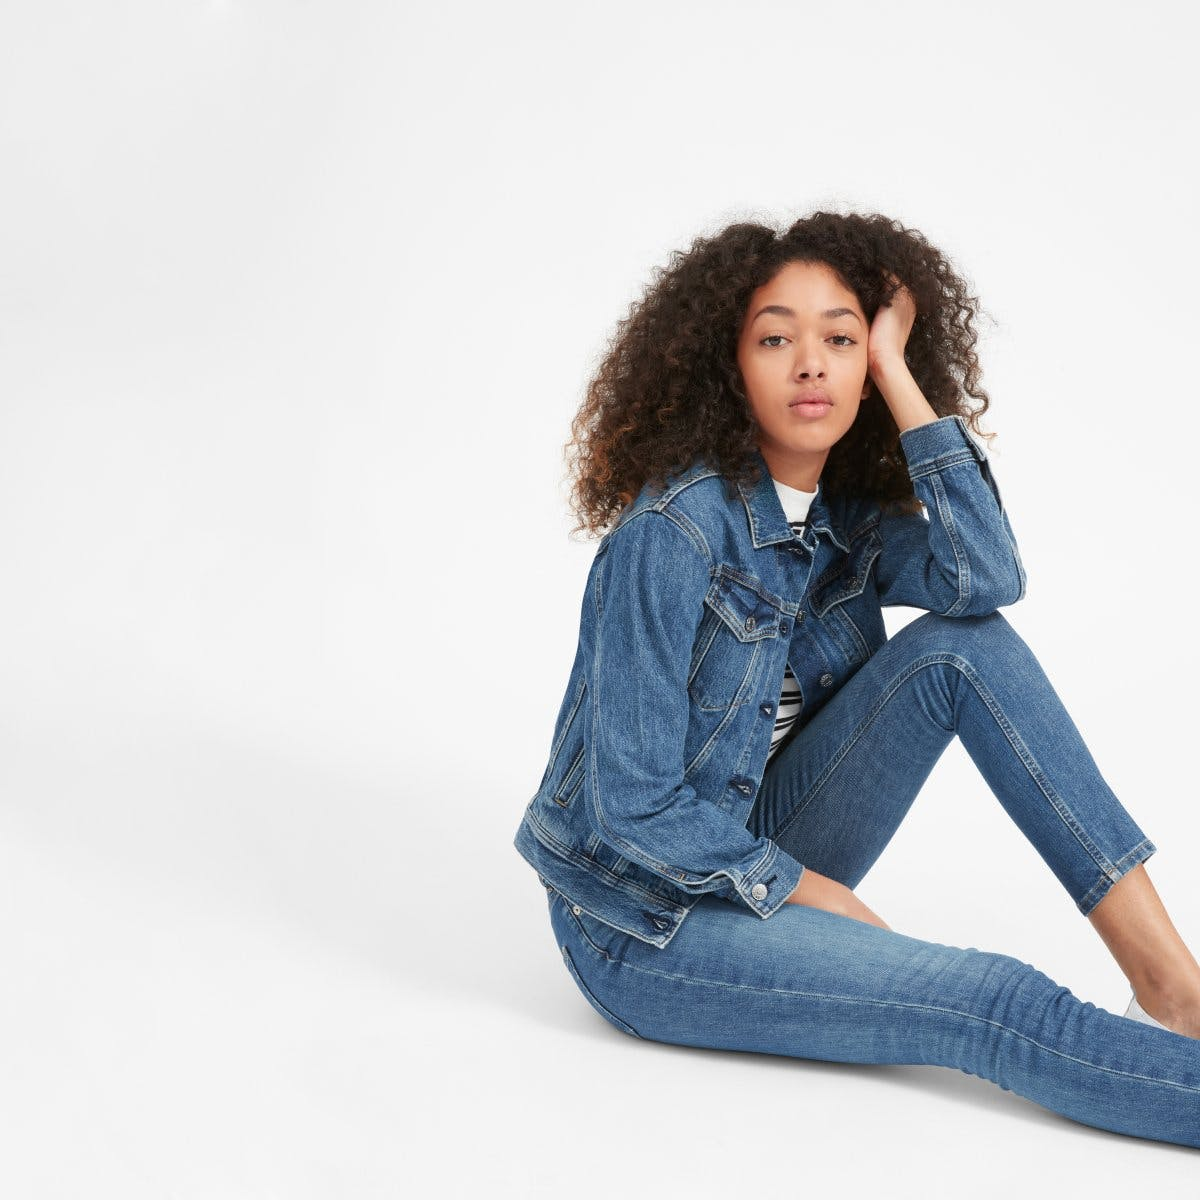 The Denim Jacket in Blue Wash